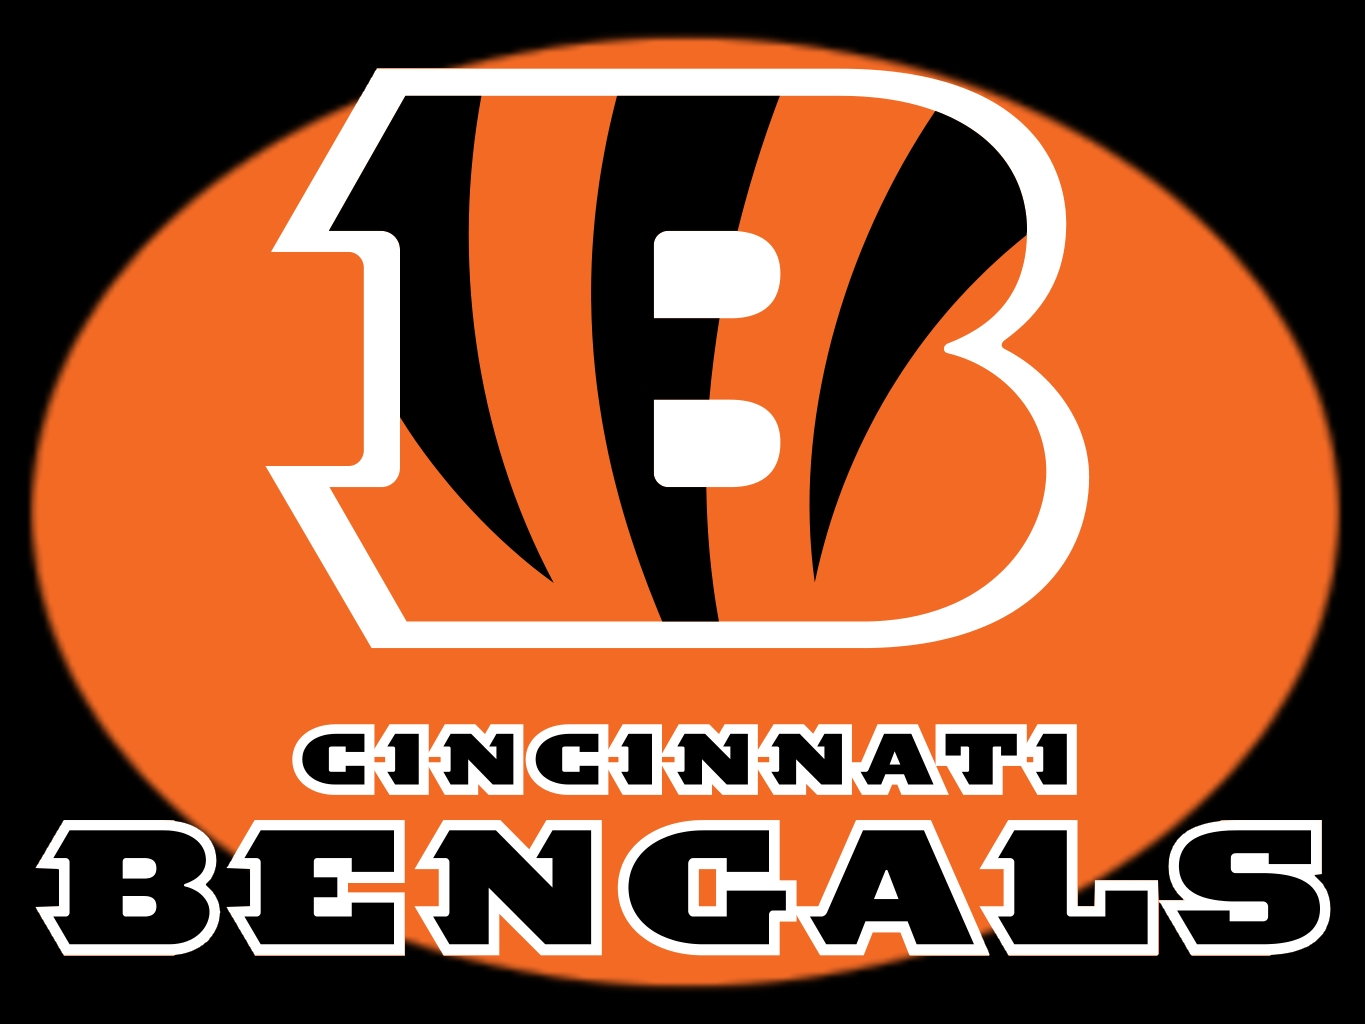 Image of the Cincinnati Bengals logo.